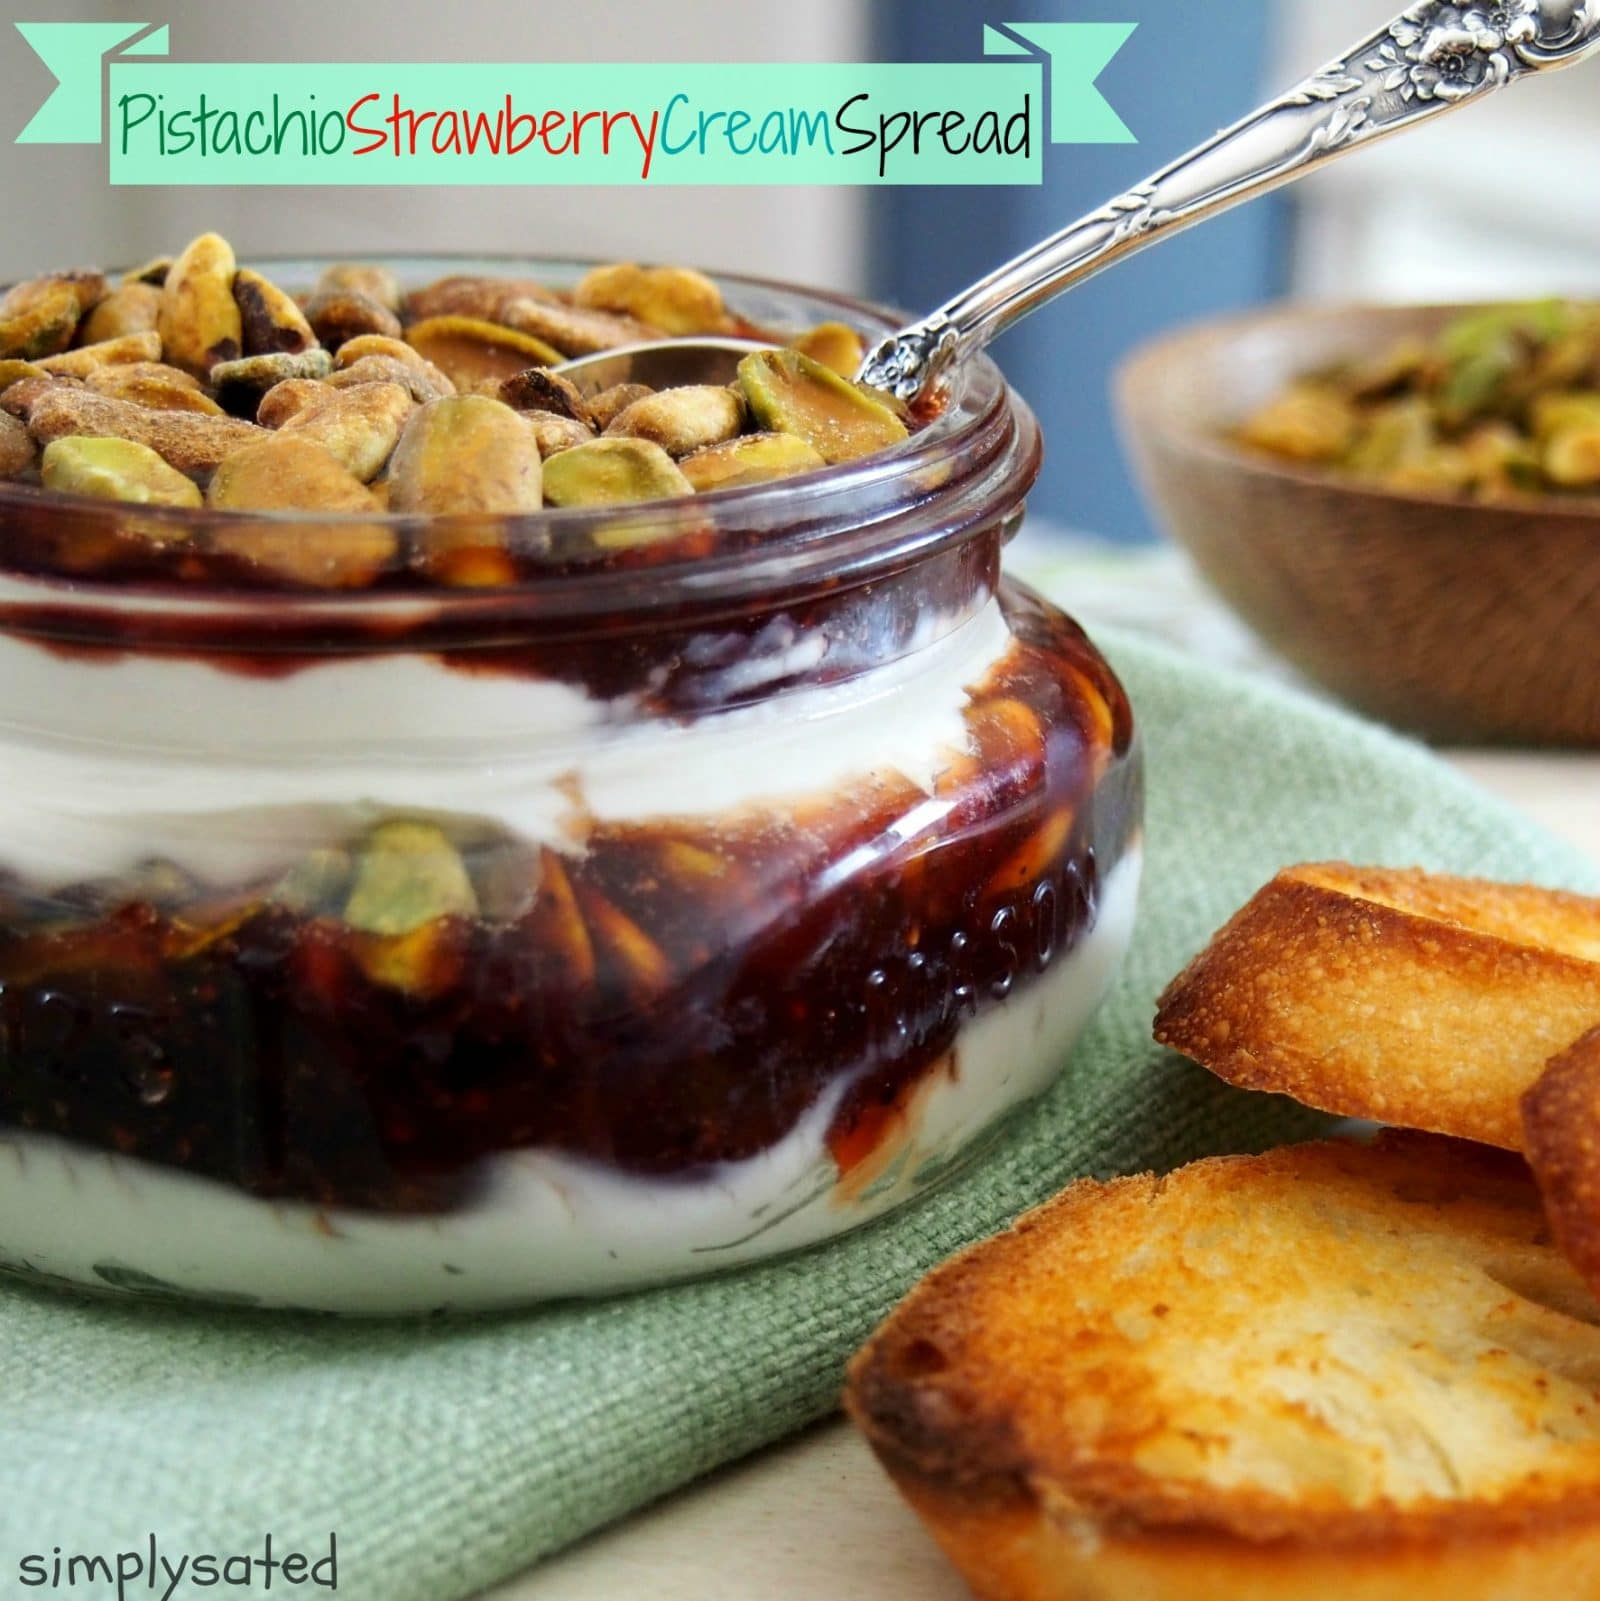 Pistachio Strawberry Cream Spread. Toasted pistachios, strawberry jam & cream cheese is a delicious sweet, salty creamy party or crowd pleaser. Spread on crostini or crackers for the perfect snach anytime.